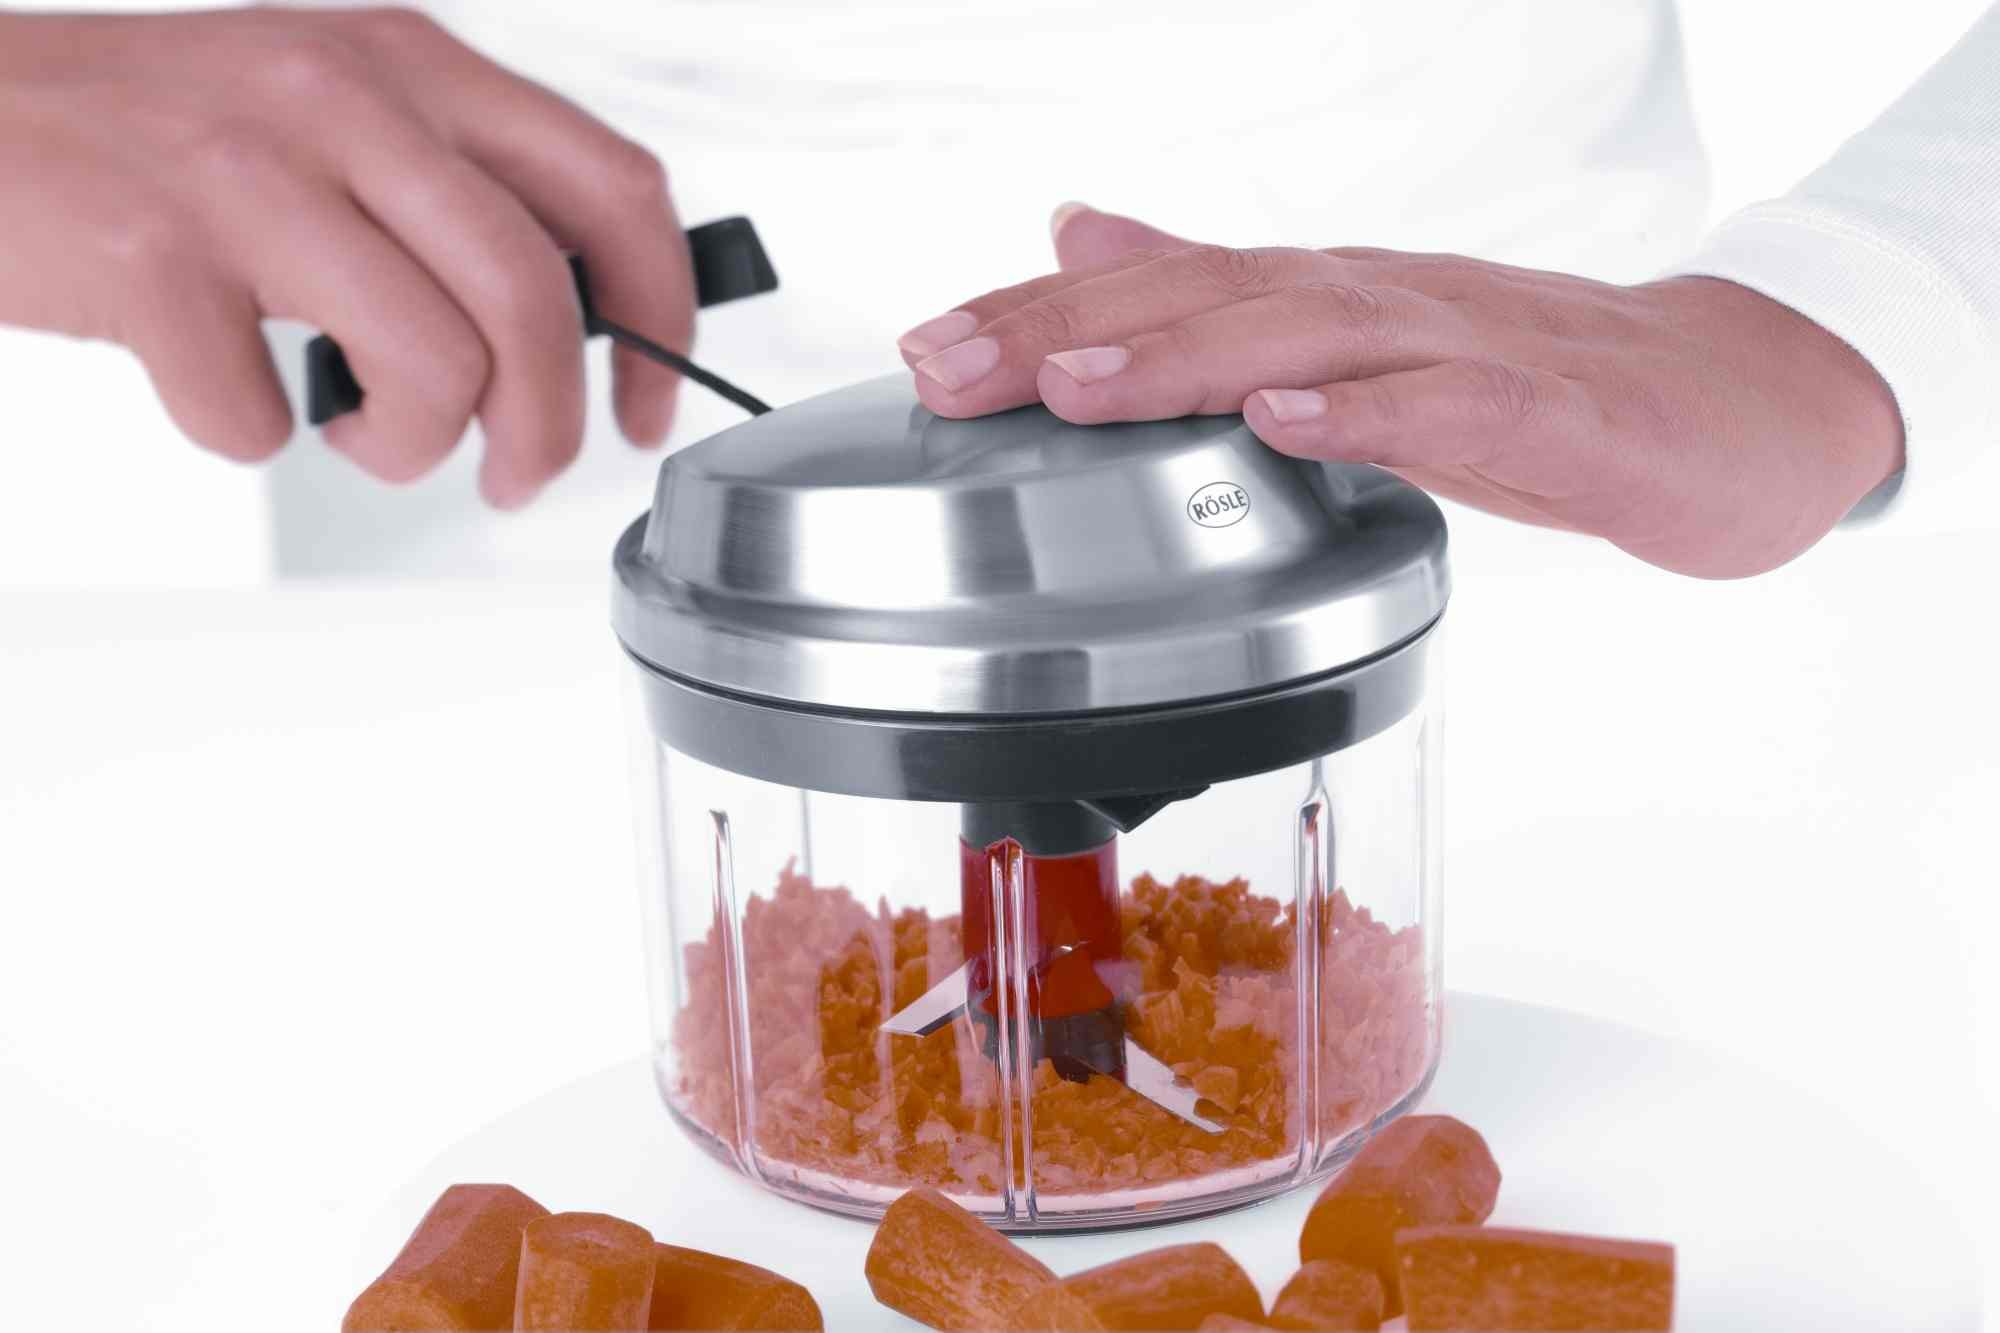 Rösle Manual Multi-Cutter with Spin-Drying Herbs Basket by Rosle (Image #8)